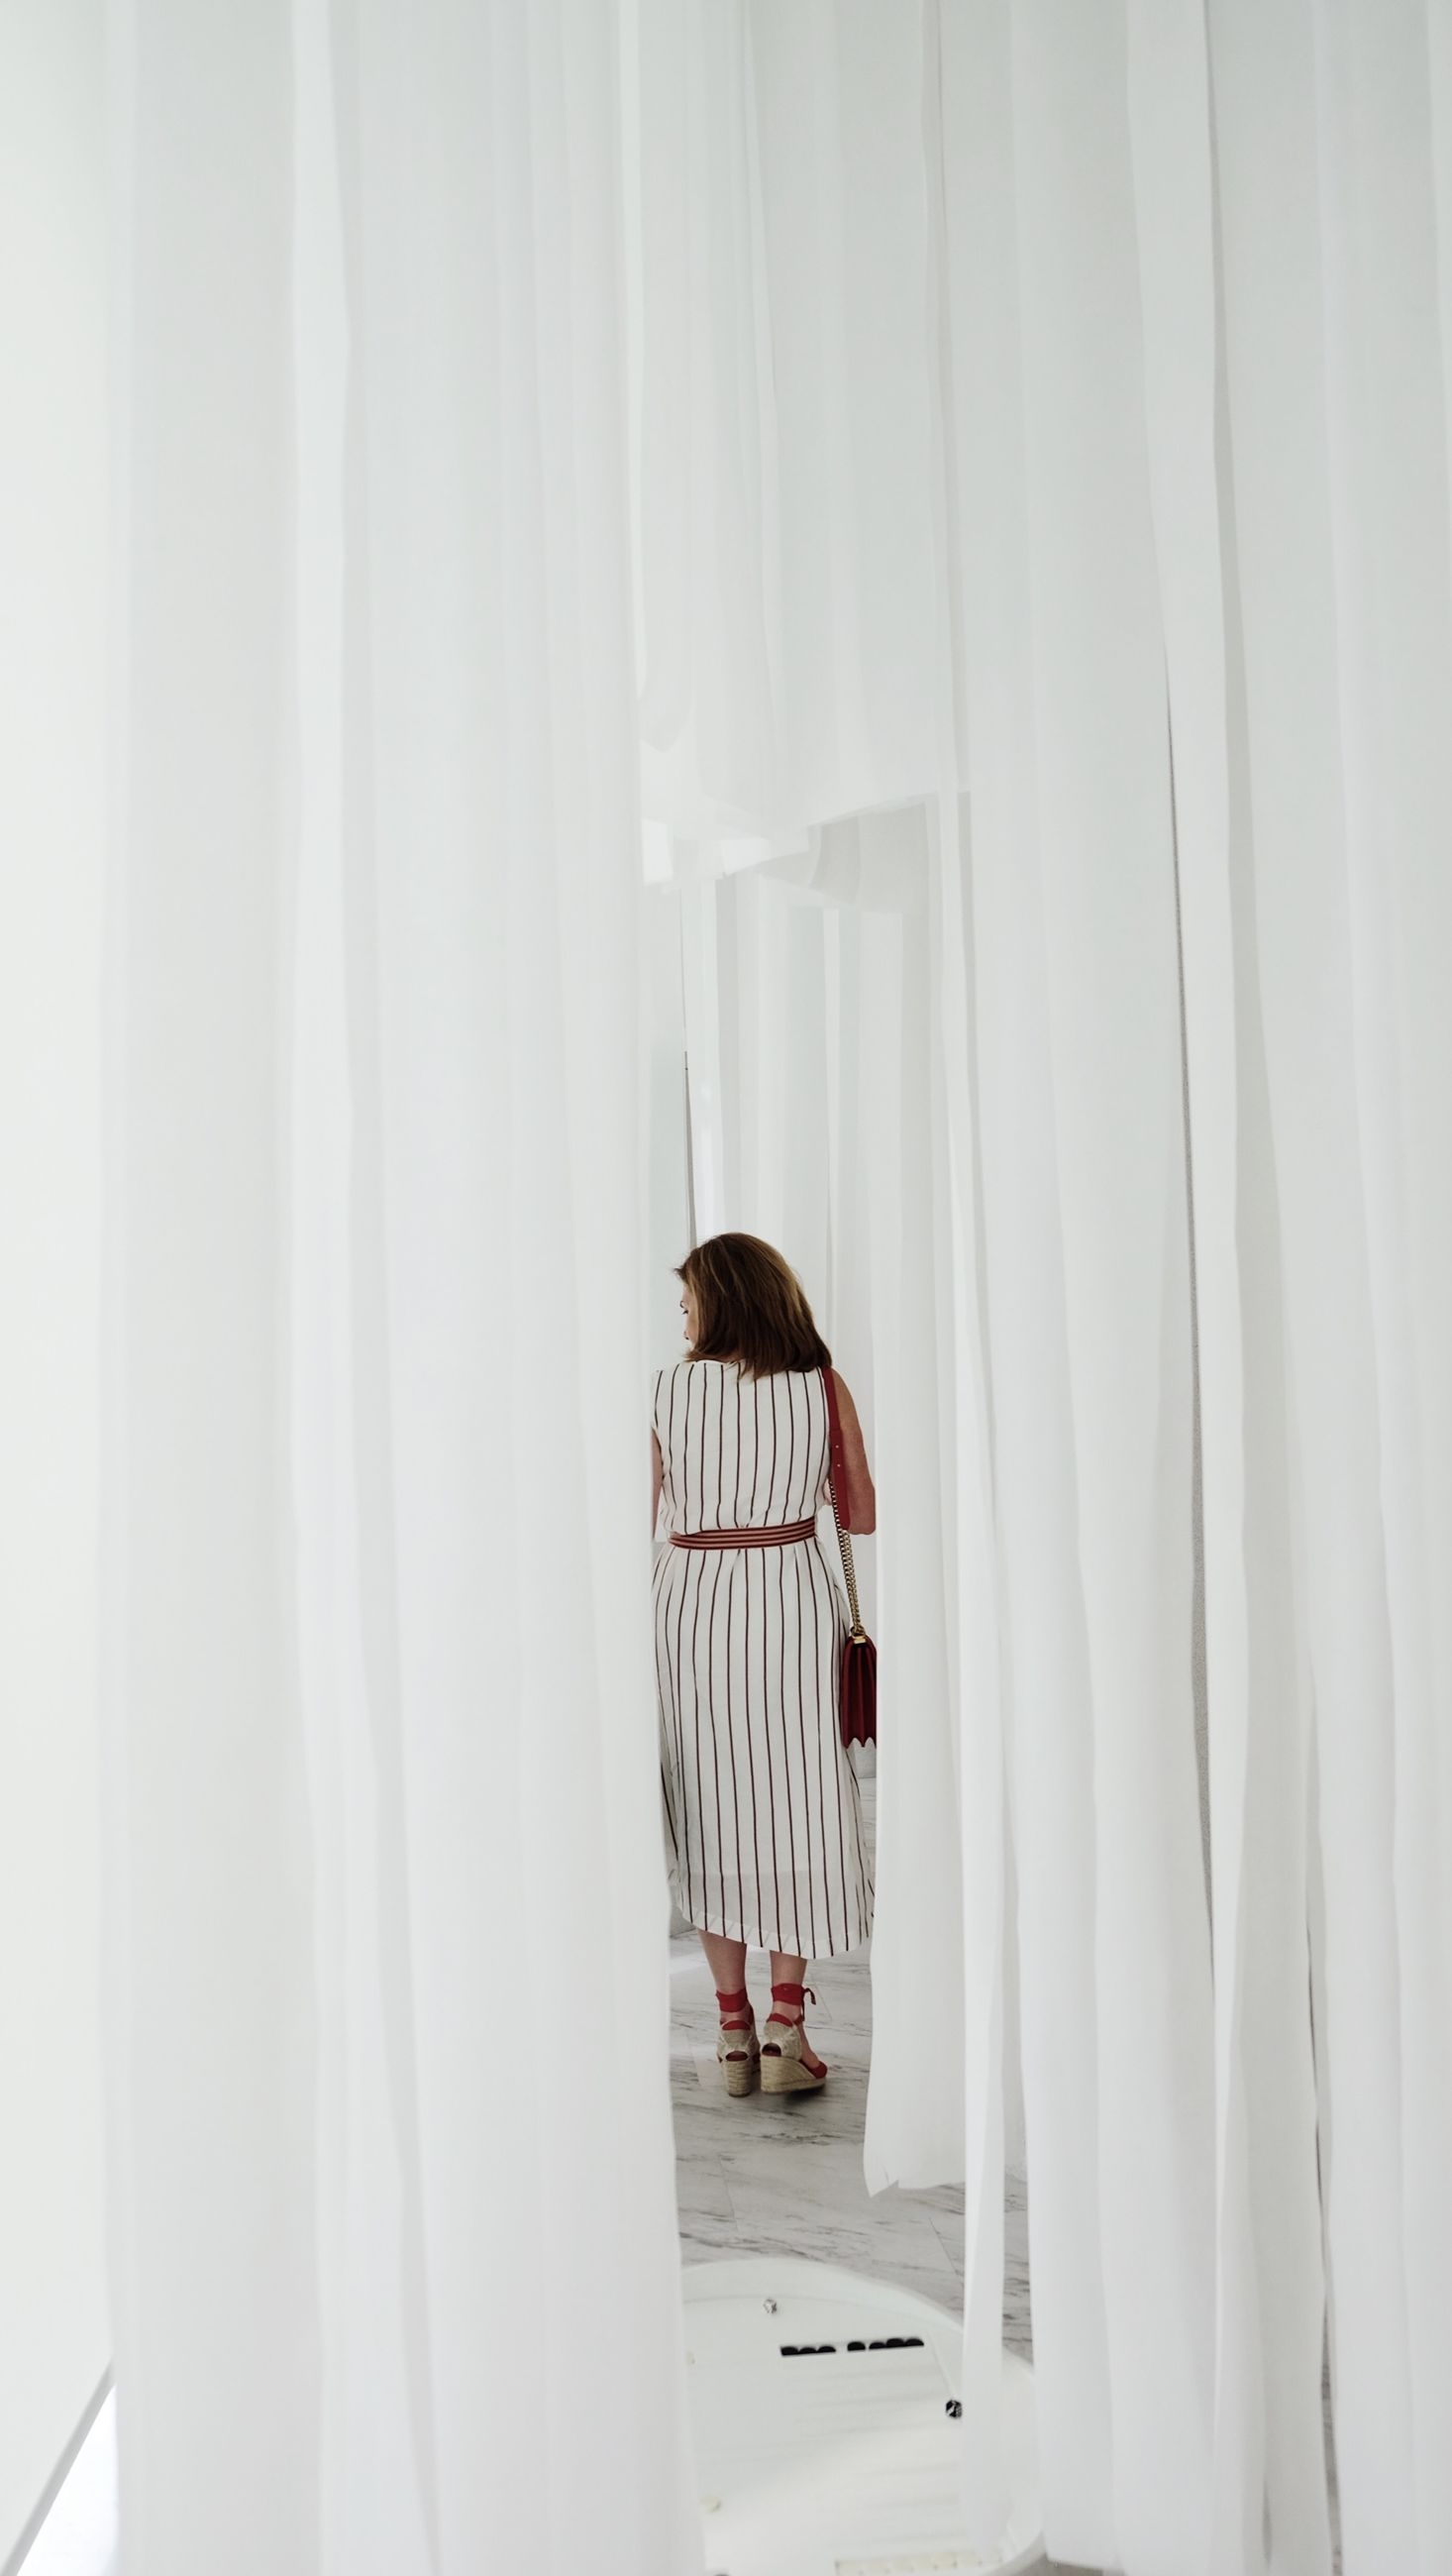 curtain, indoors, white color, one person, real people, textile, home interior, standing, lifestyles, architecture, white, window, hanging, women, seat, adult, day, young adult